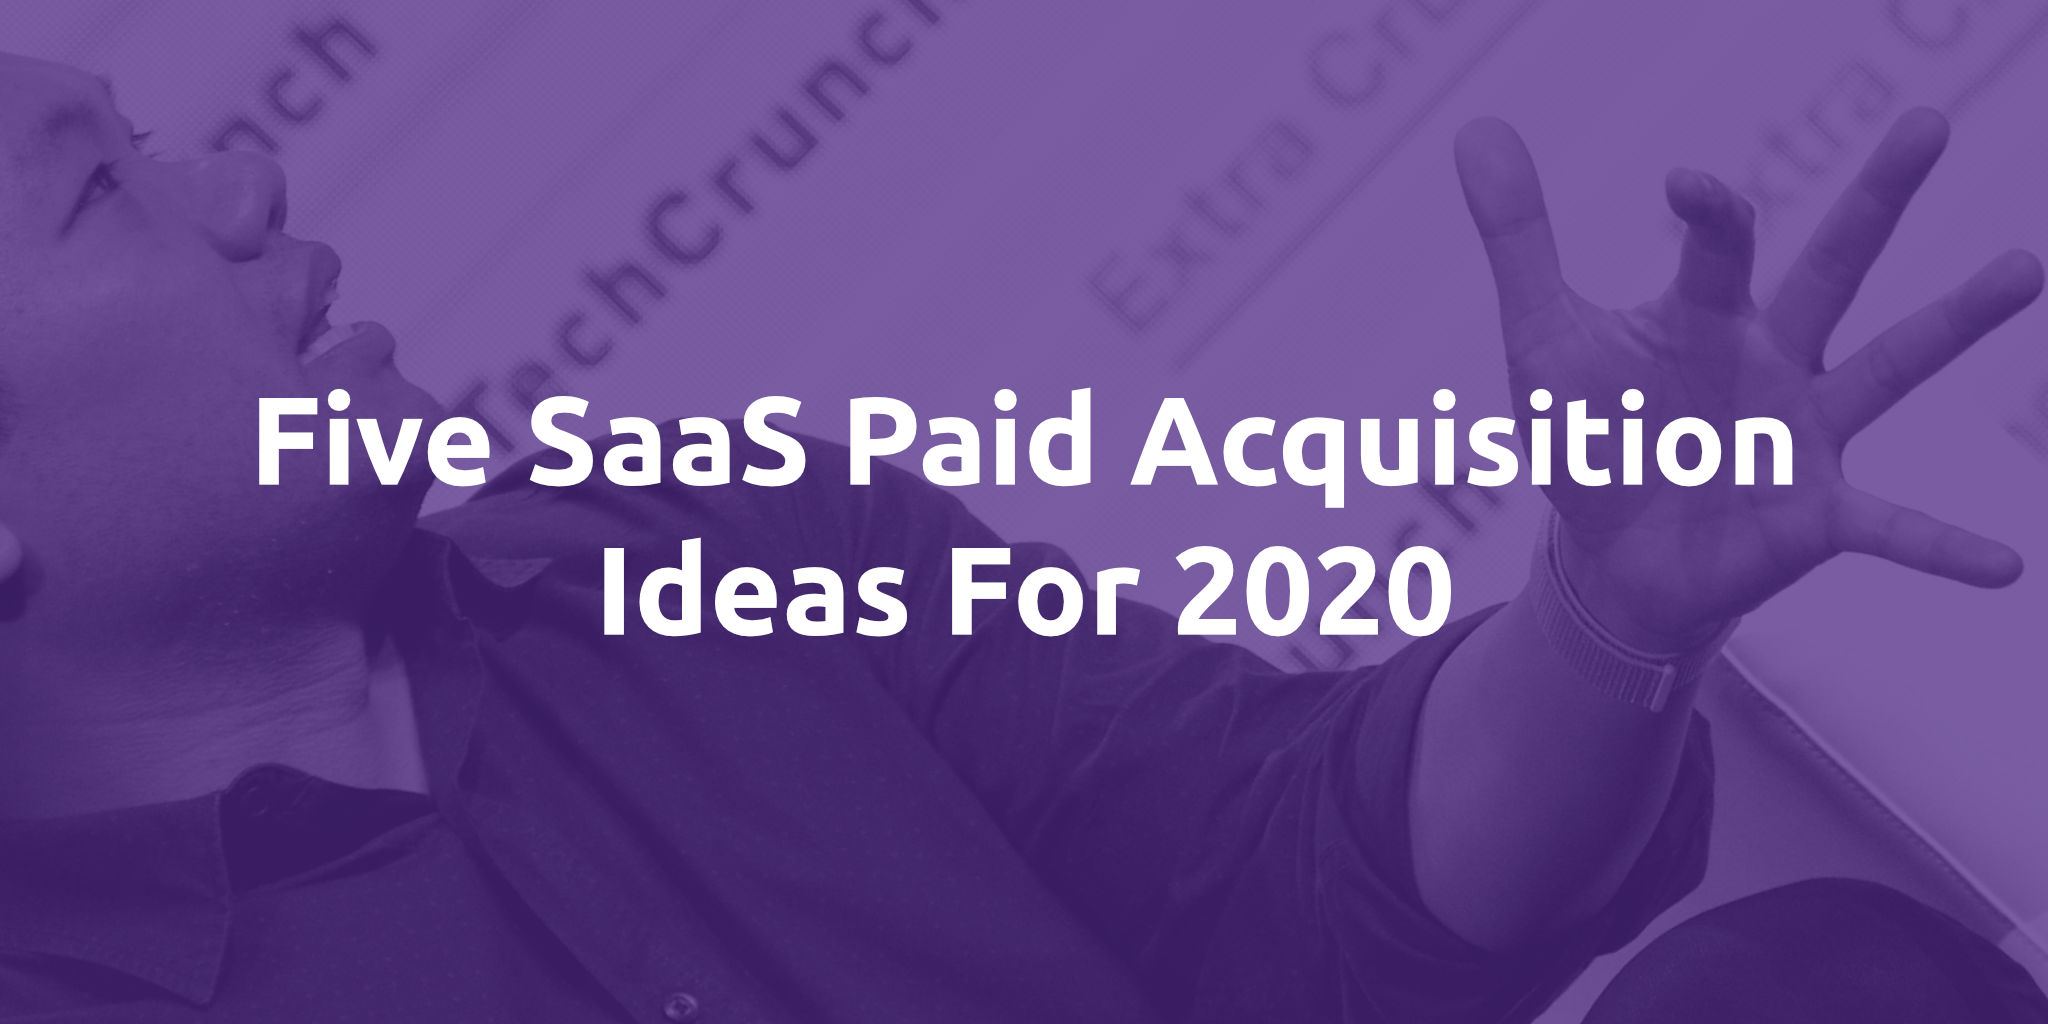 saas paid acquisition ideas